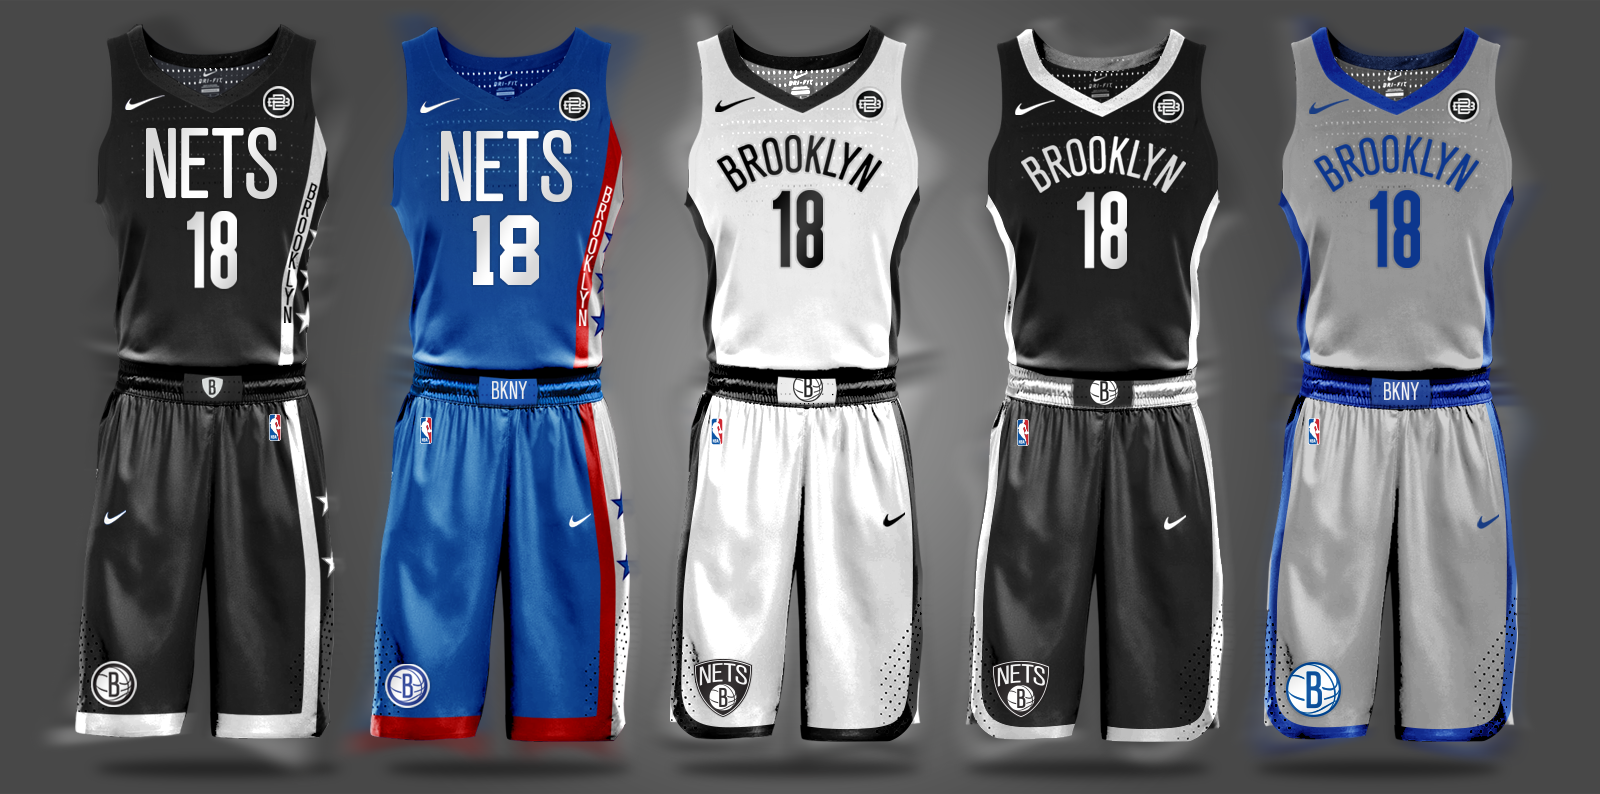 huge selection of 51308 a5399 NBA Nike Uniform Concepts - I Am Brian Begley